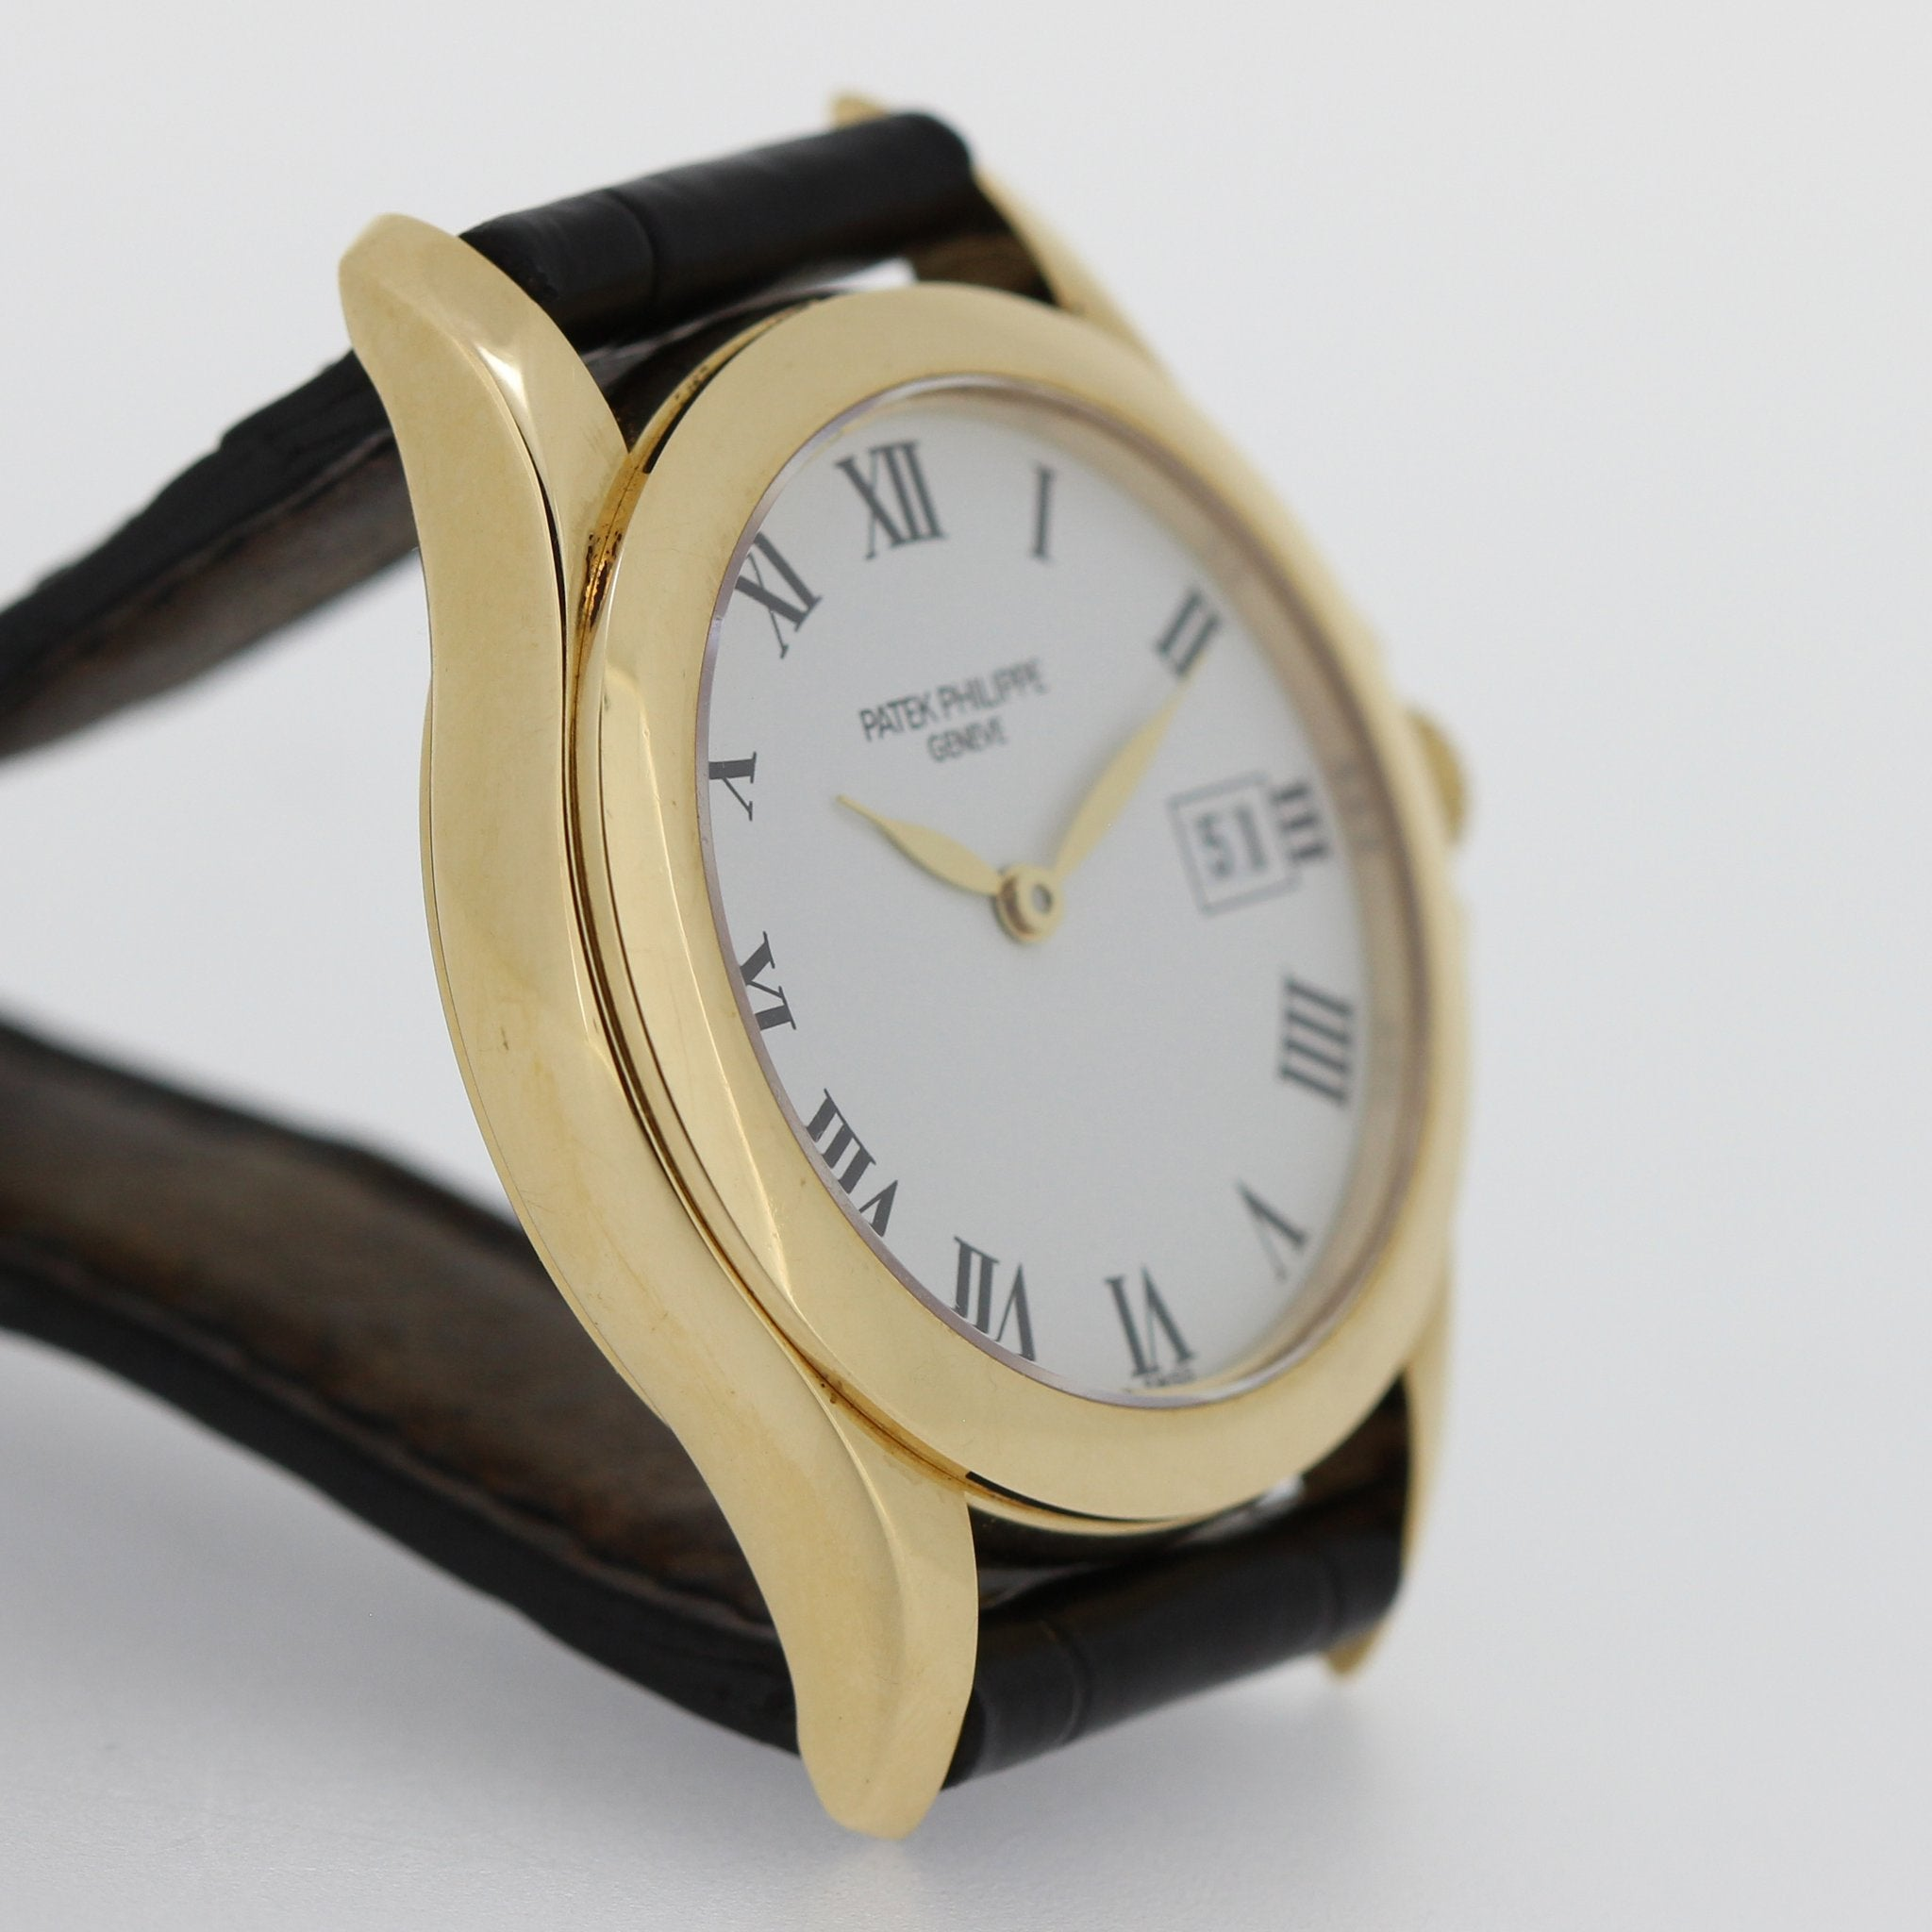 Patek Philippe 4906J Calatrava Watch